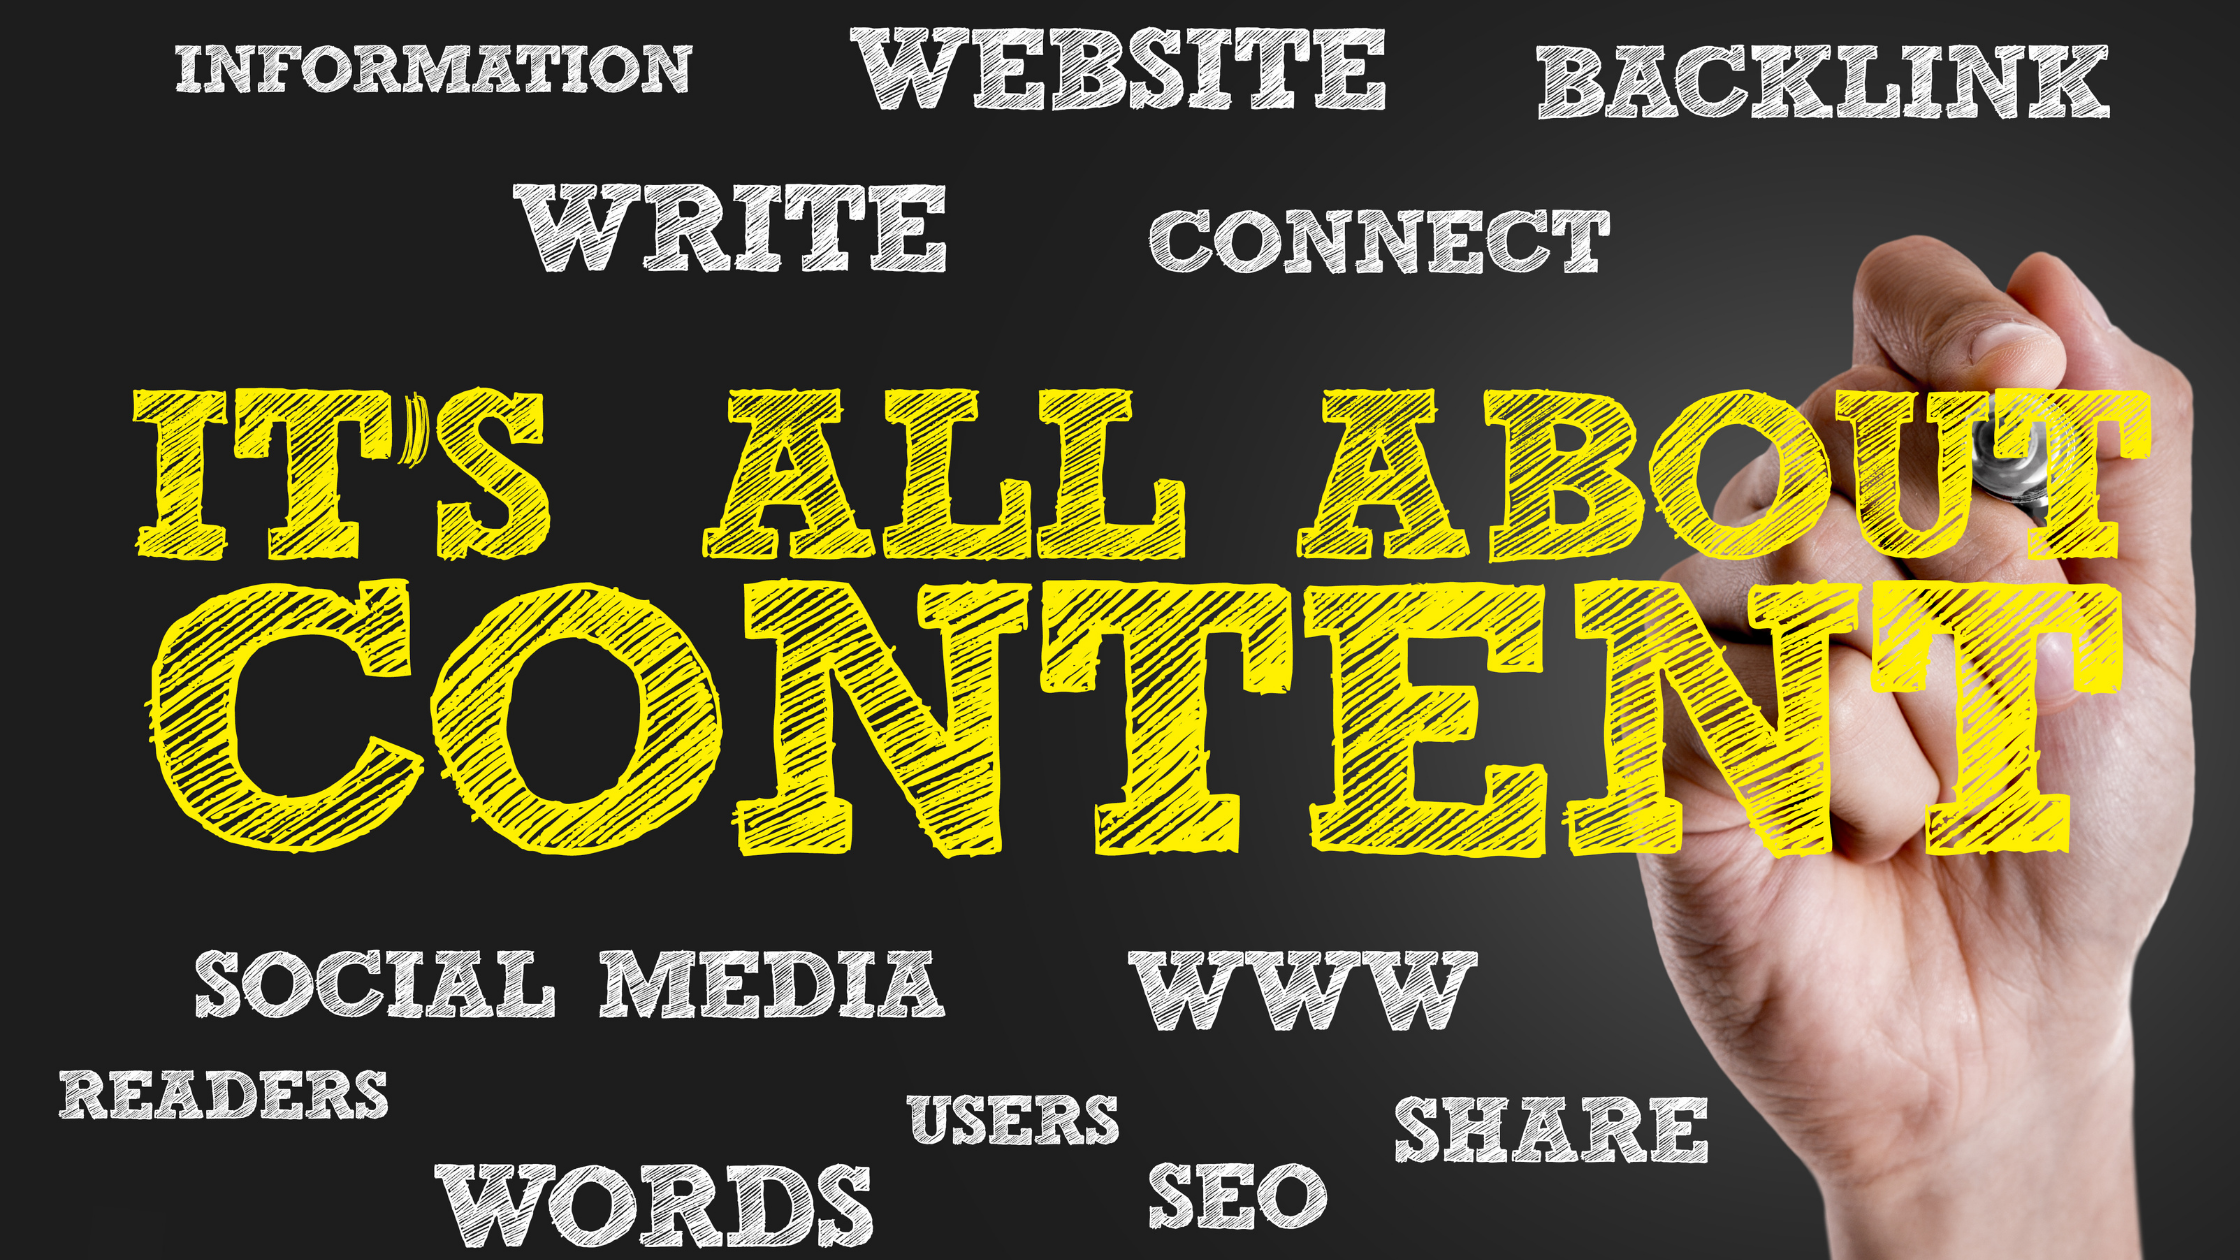 I will provide you the best content for your website or business.